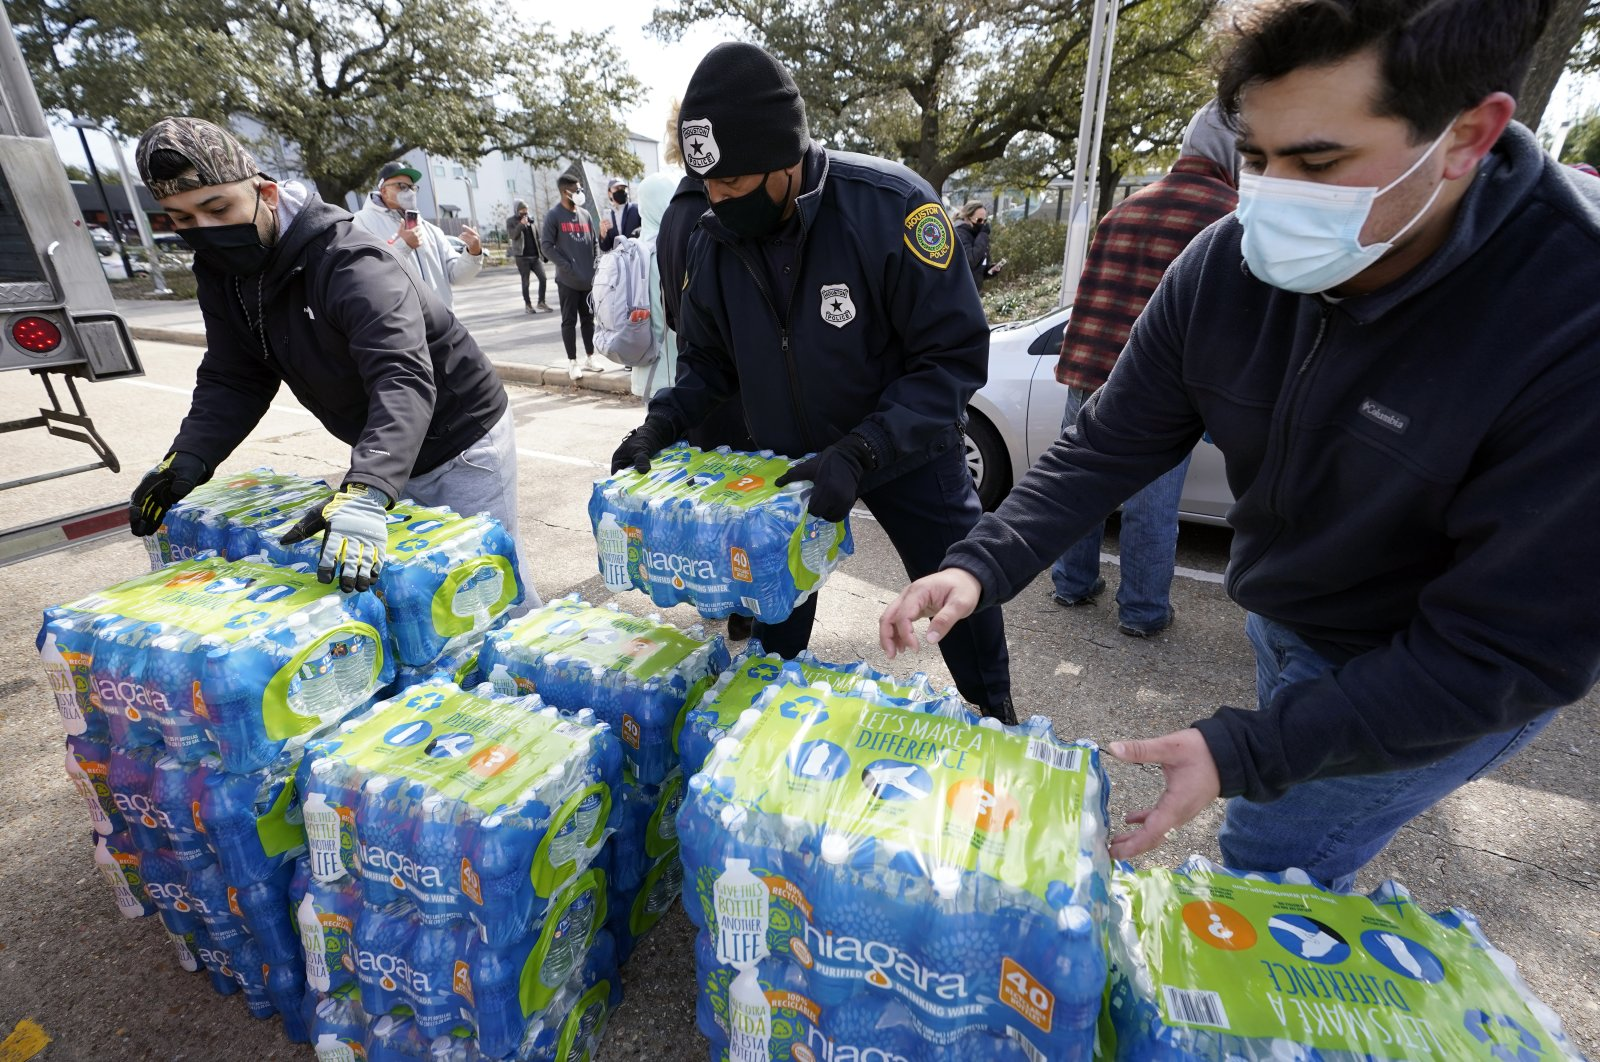 Donated water is distributed to residents, in Houston, Texas, U.S. Feb. 18, 2021. (AP Photo)